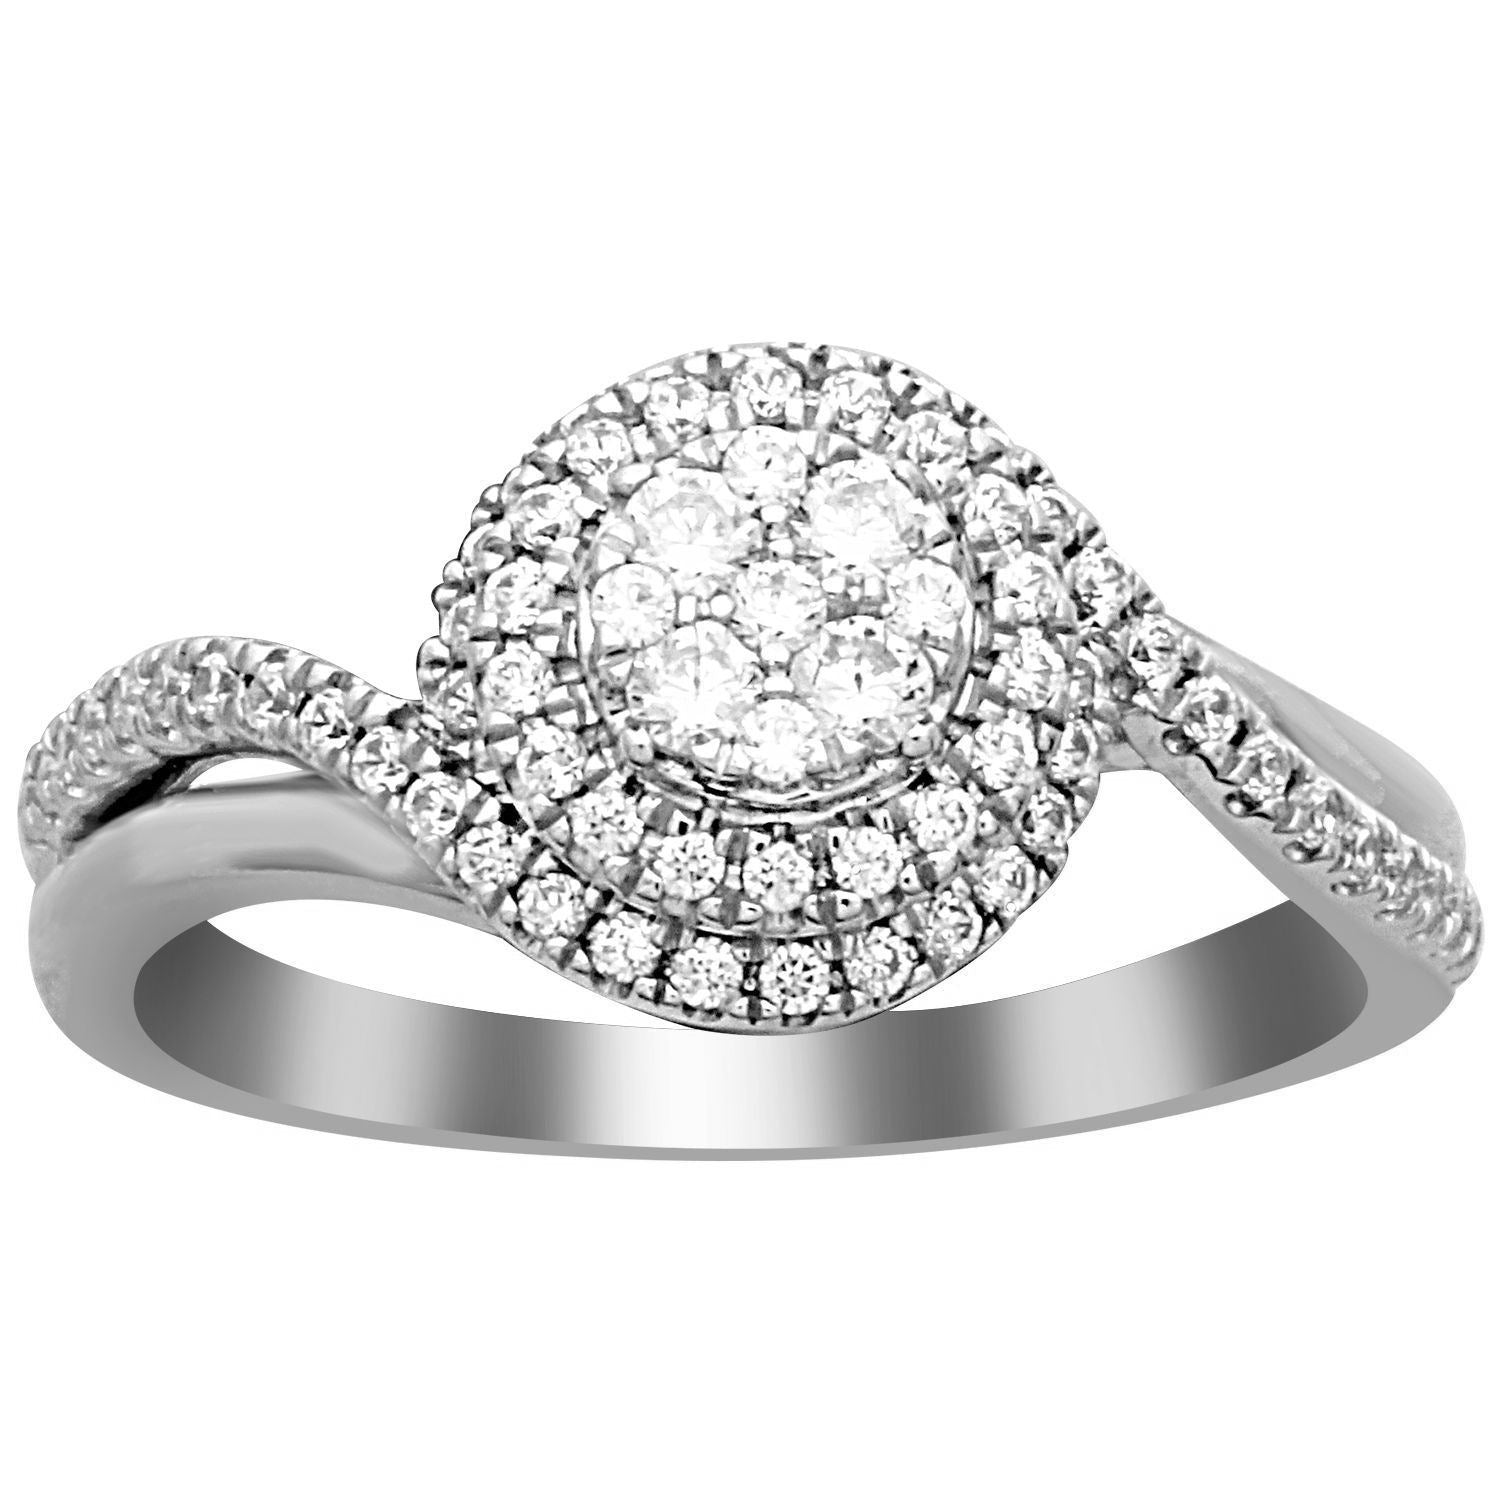 1/2 CTTW Pave Diamond Swirl Ring - Crestwood Jewelers